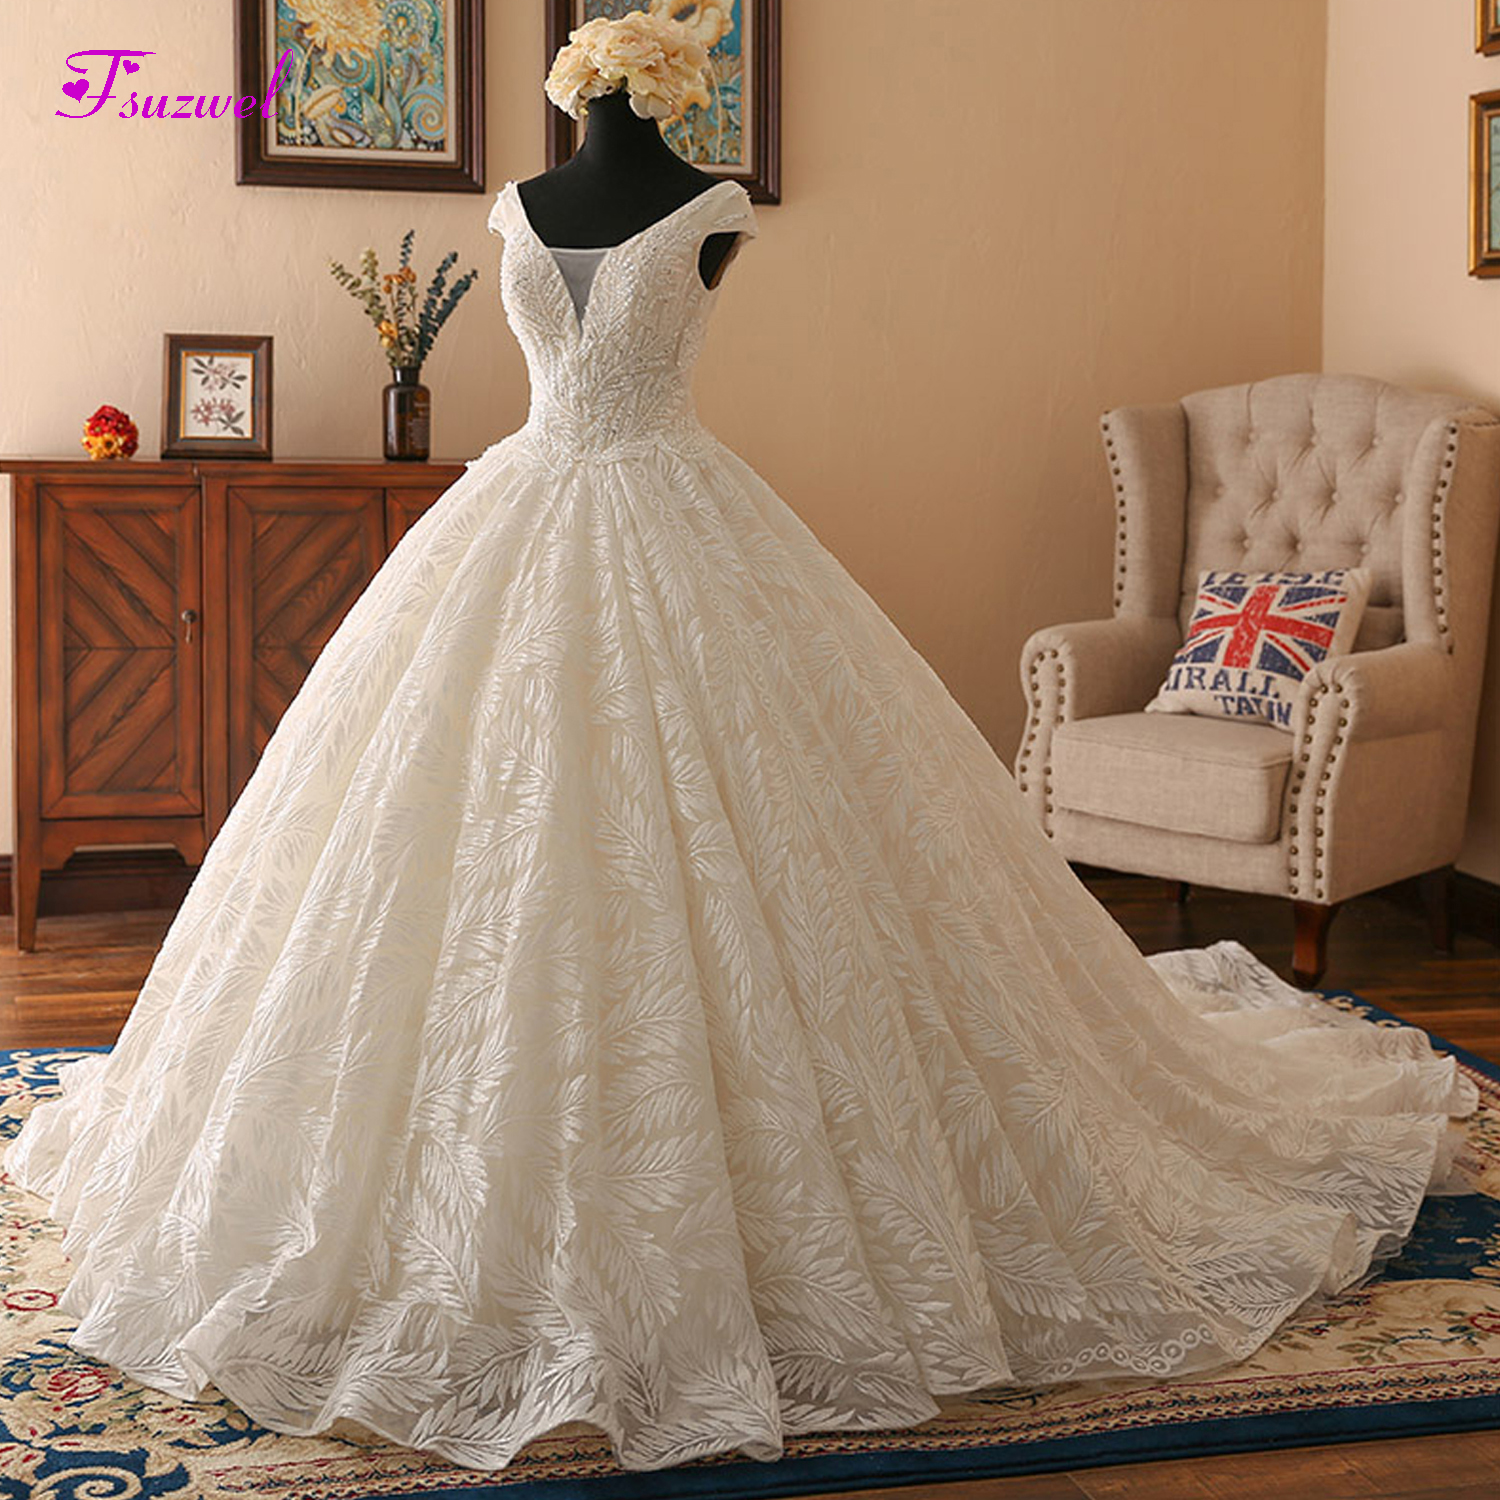 Fsuzwel Sweetheart Neck Sequined Beaded Ball Gown Wedding Dresses 2019 Glamorous Chapel Train Lace Wedding Gown